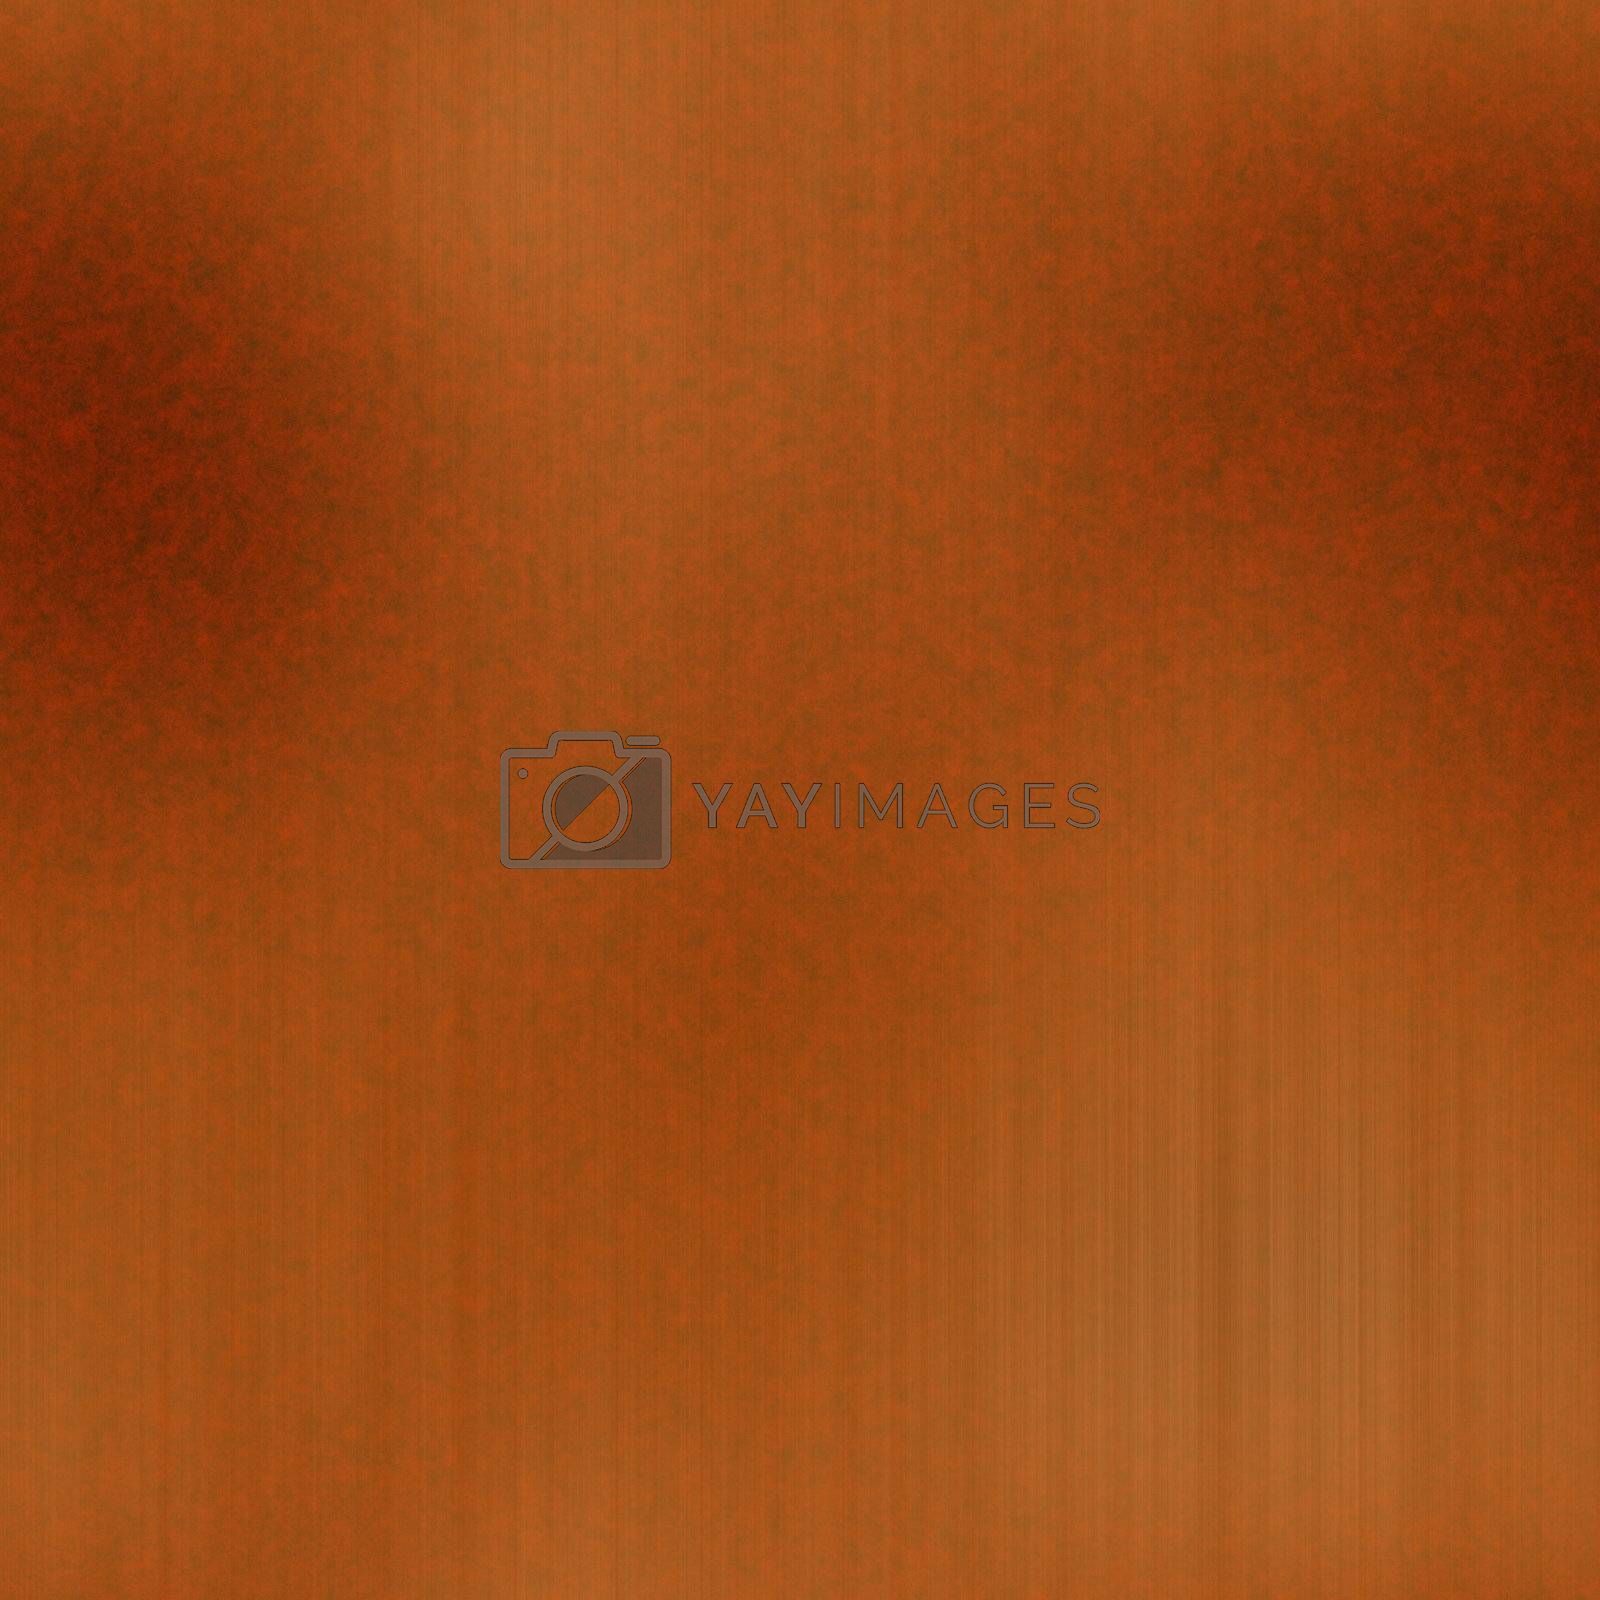 Royalty free image of Rusted metal by kgtoh